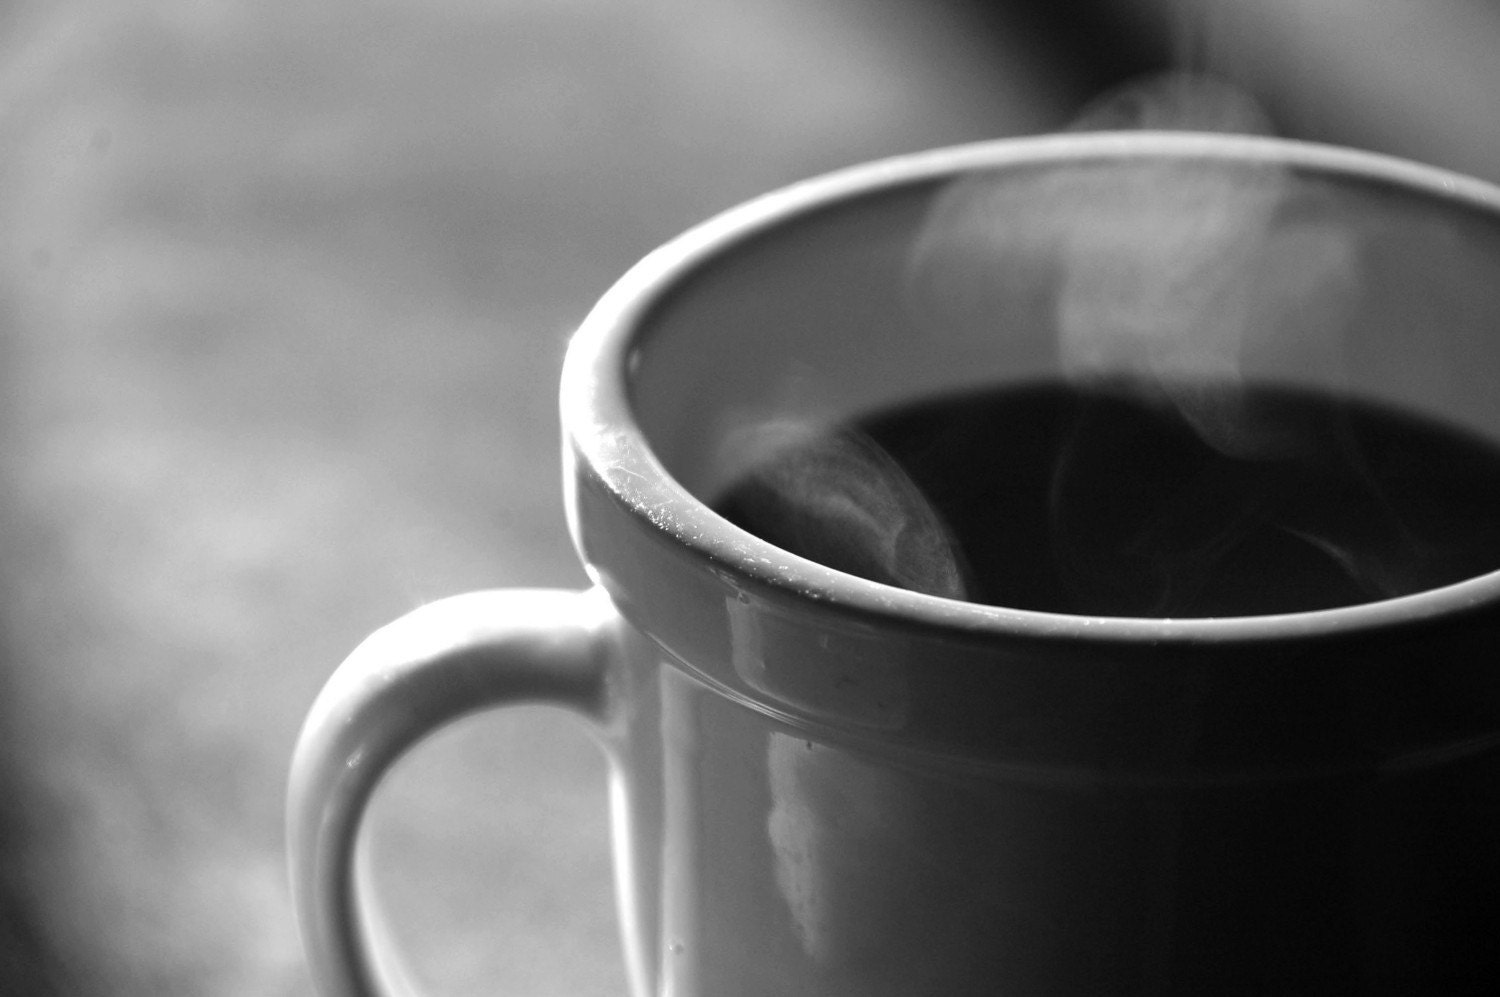 Coffee morning hot java black and white still photograph